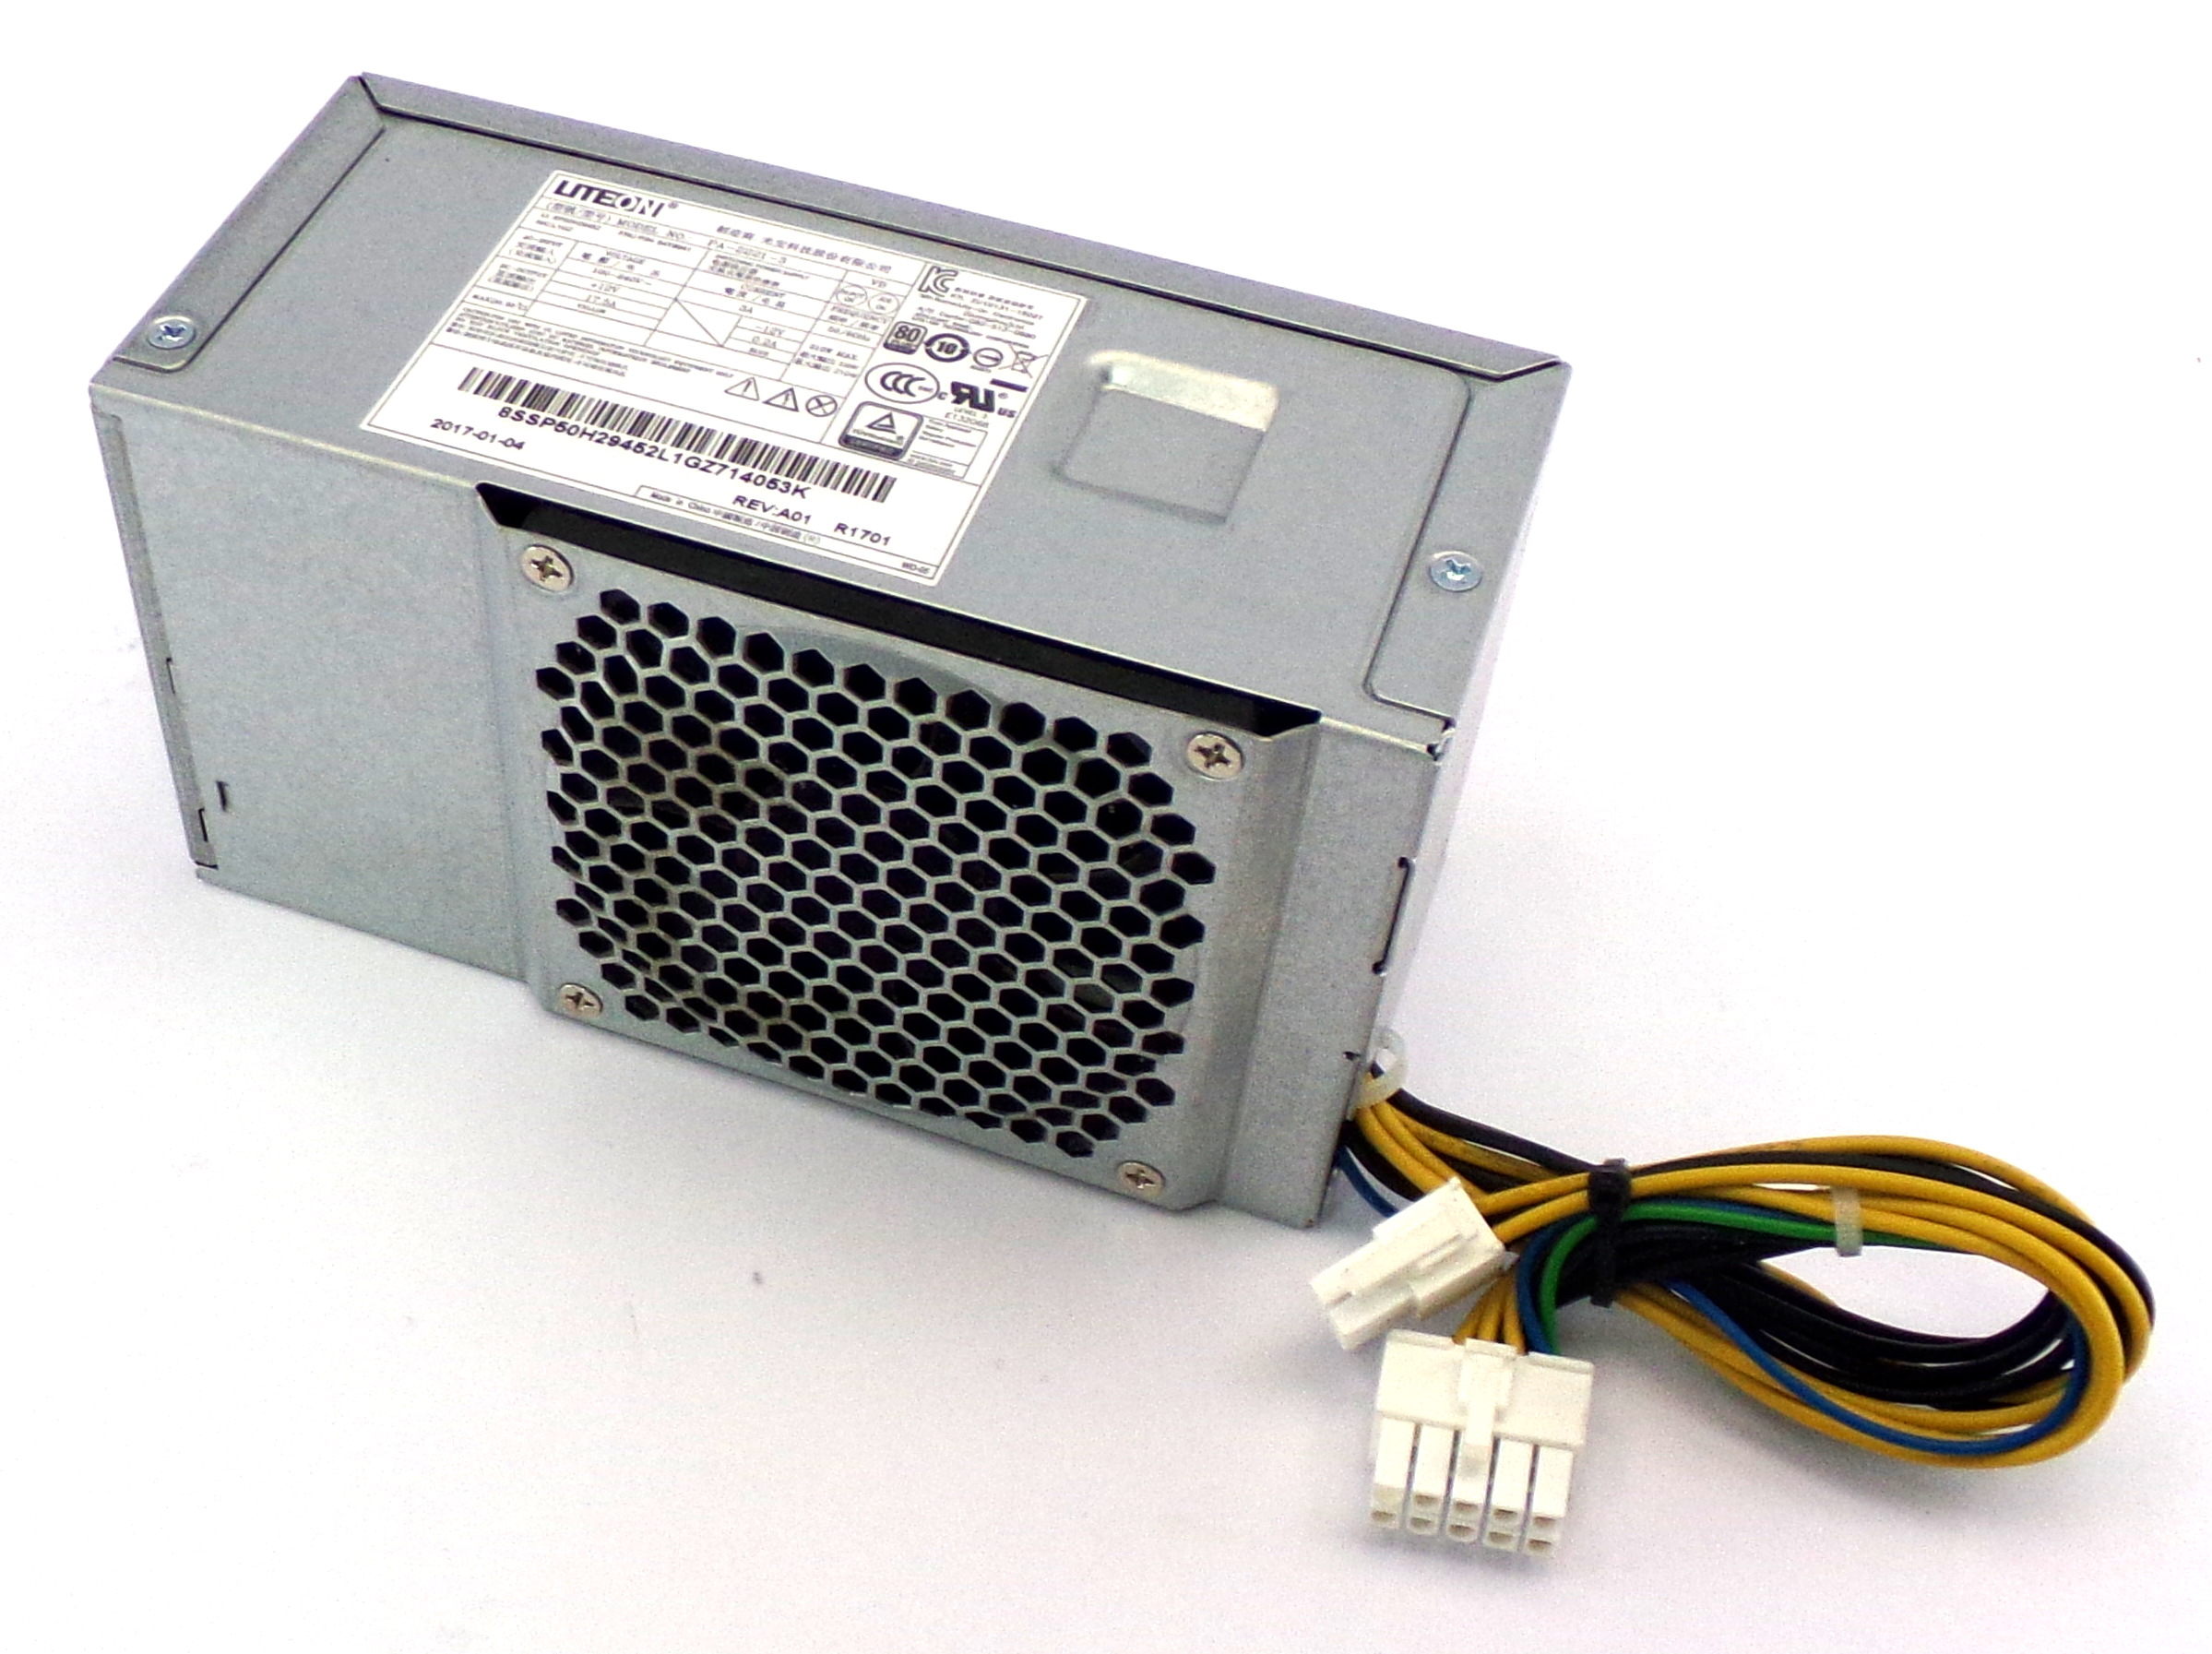 Lenovo 54Y8941 ThinkCentre M900 SFF 210W Switching Power Supply - PA-2221-3